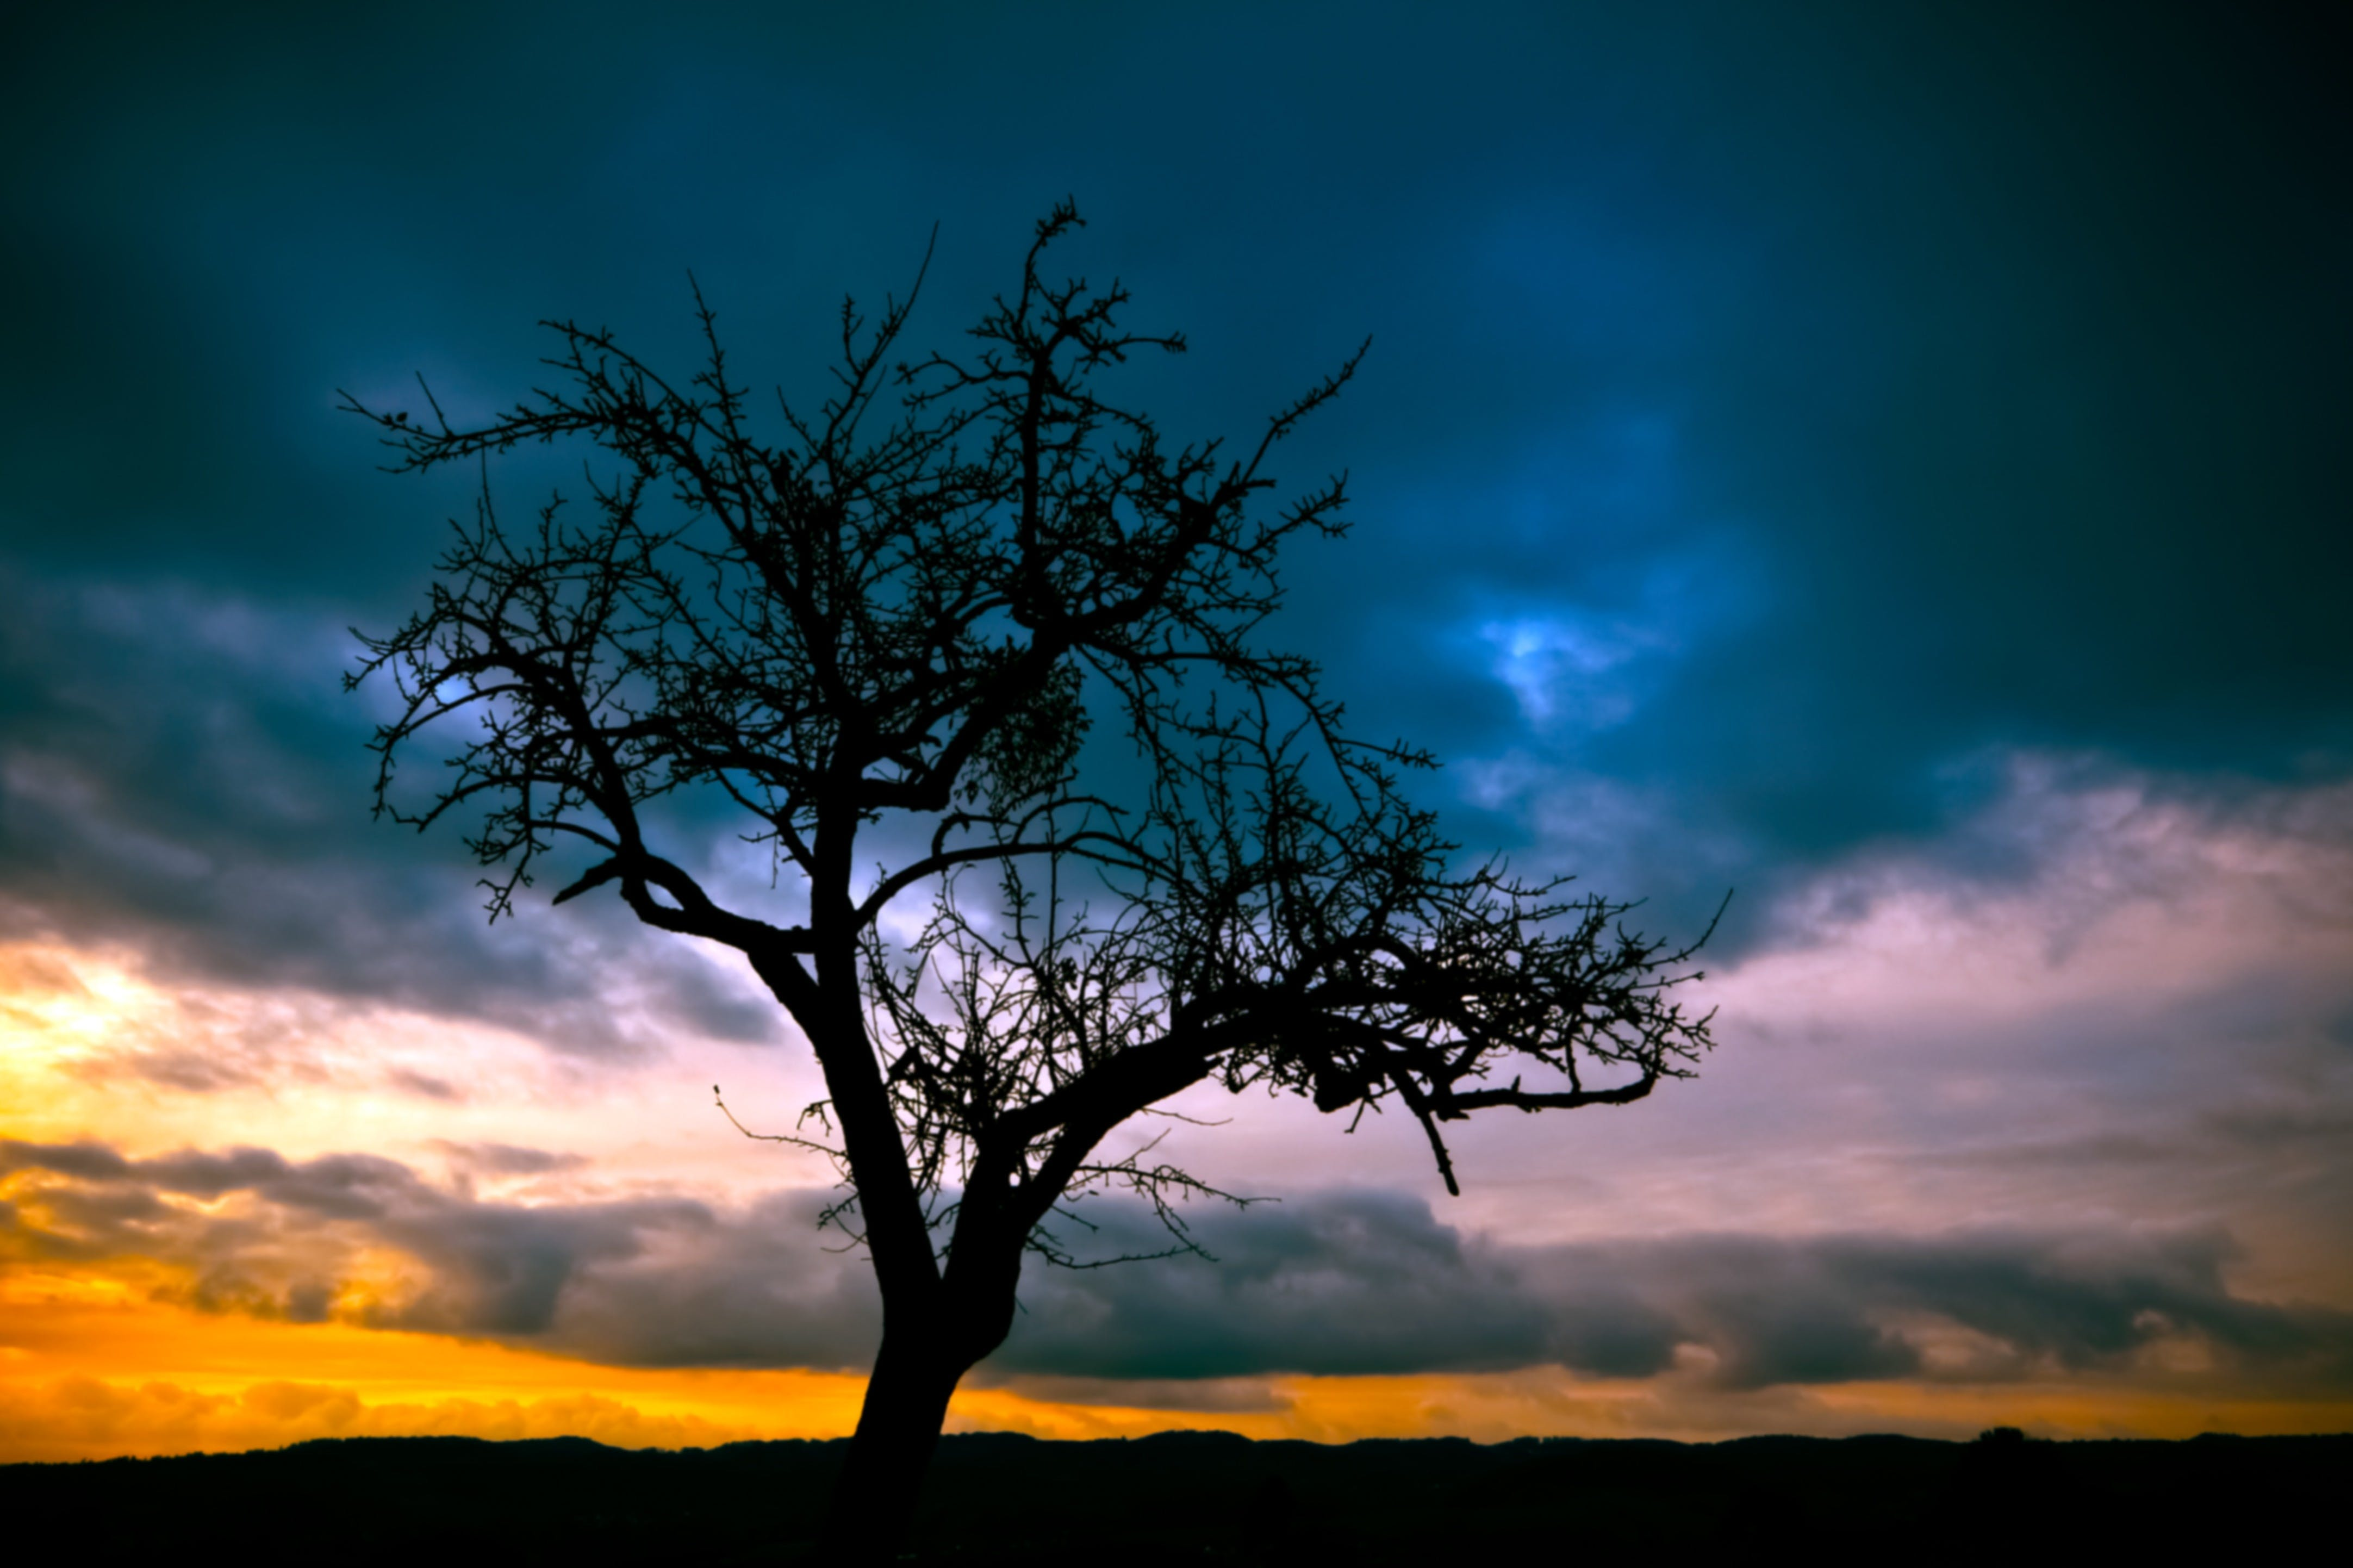 Silhouette of Bare Tree Under Dimmed Sky during Sunset